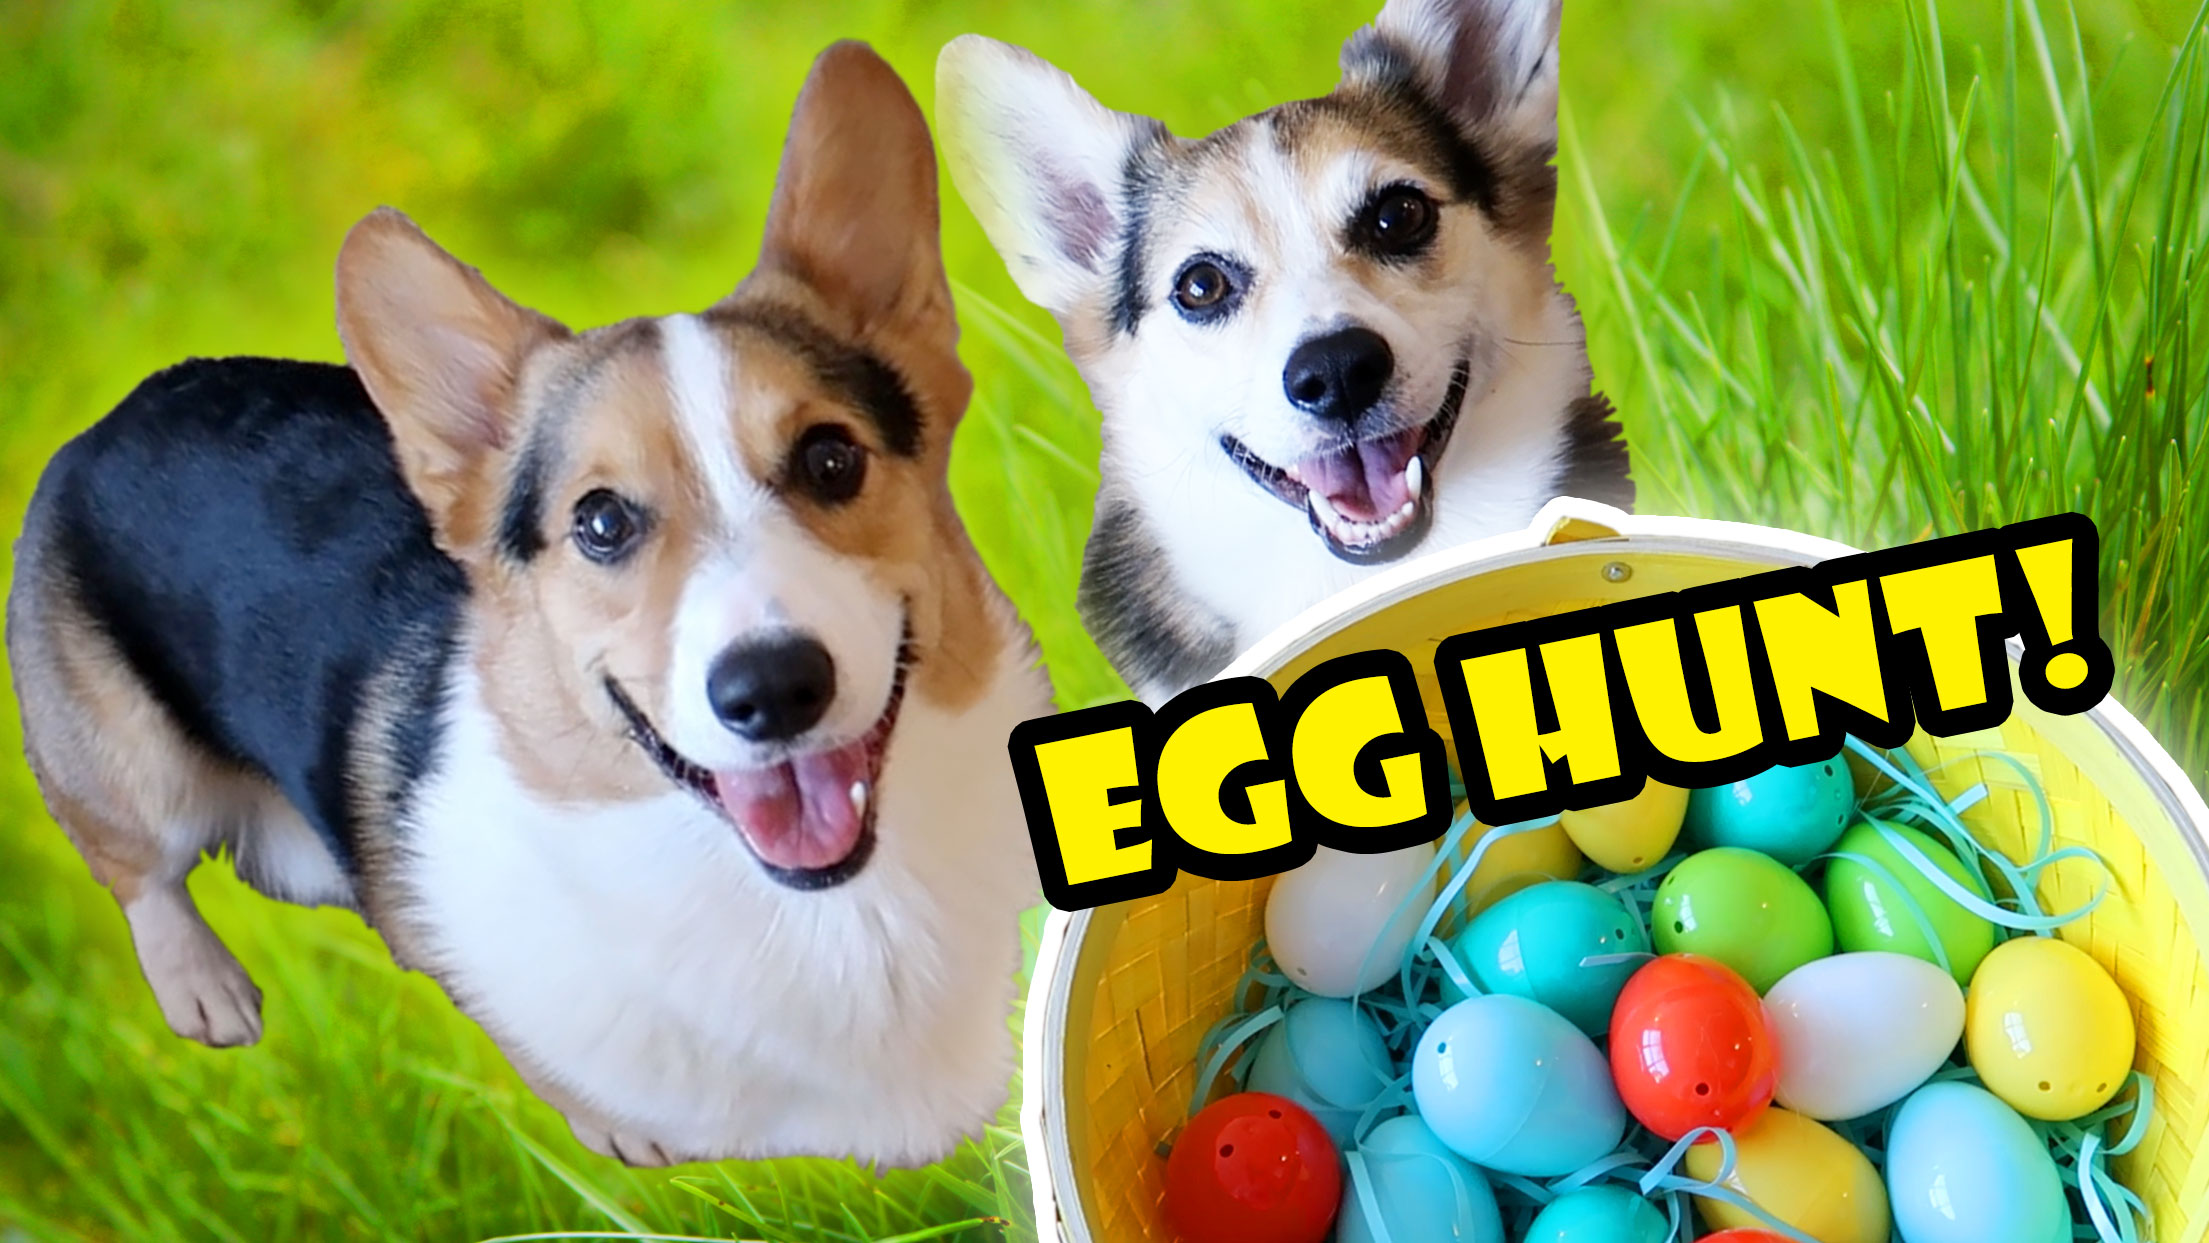 CORGIS SURPRISE EASTER EGG HUNT